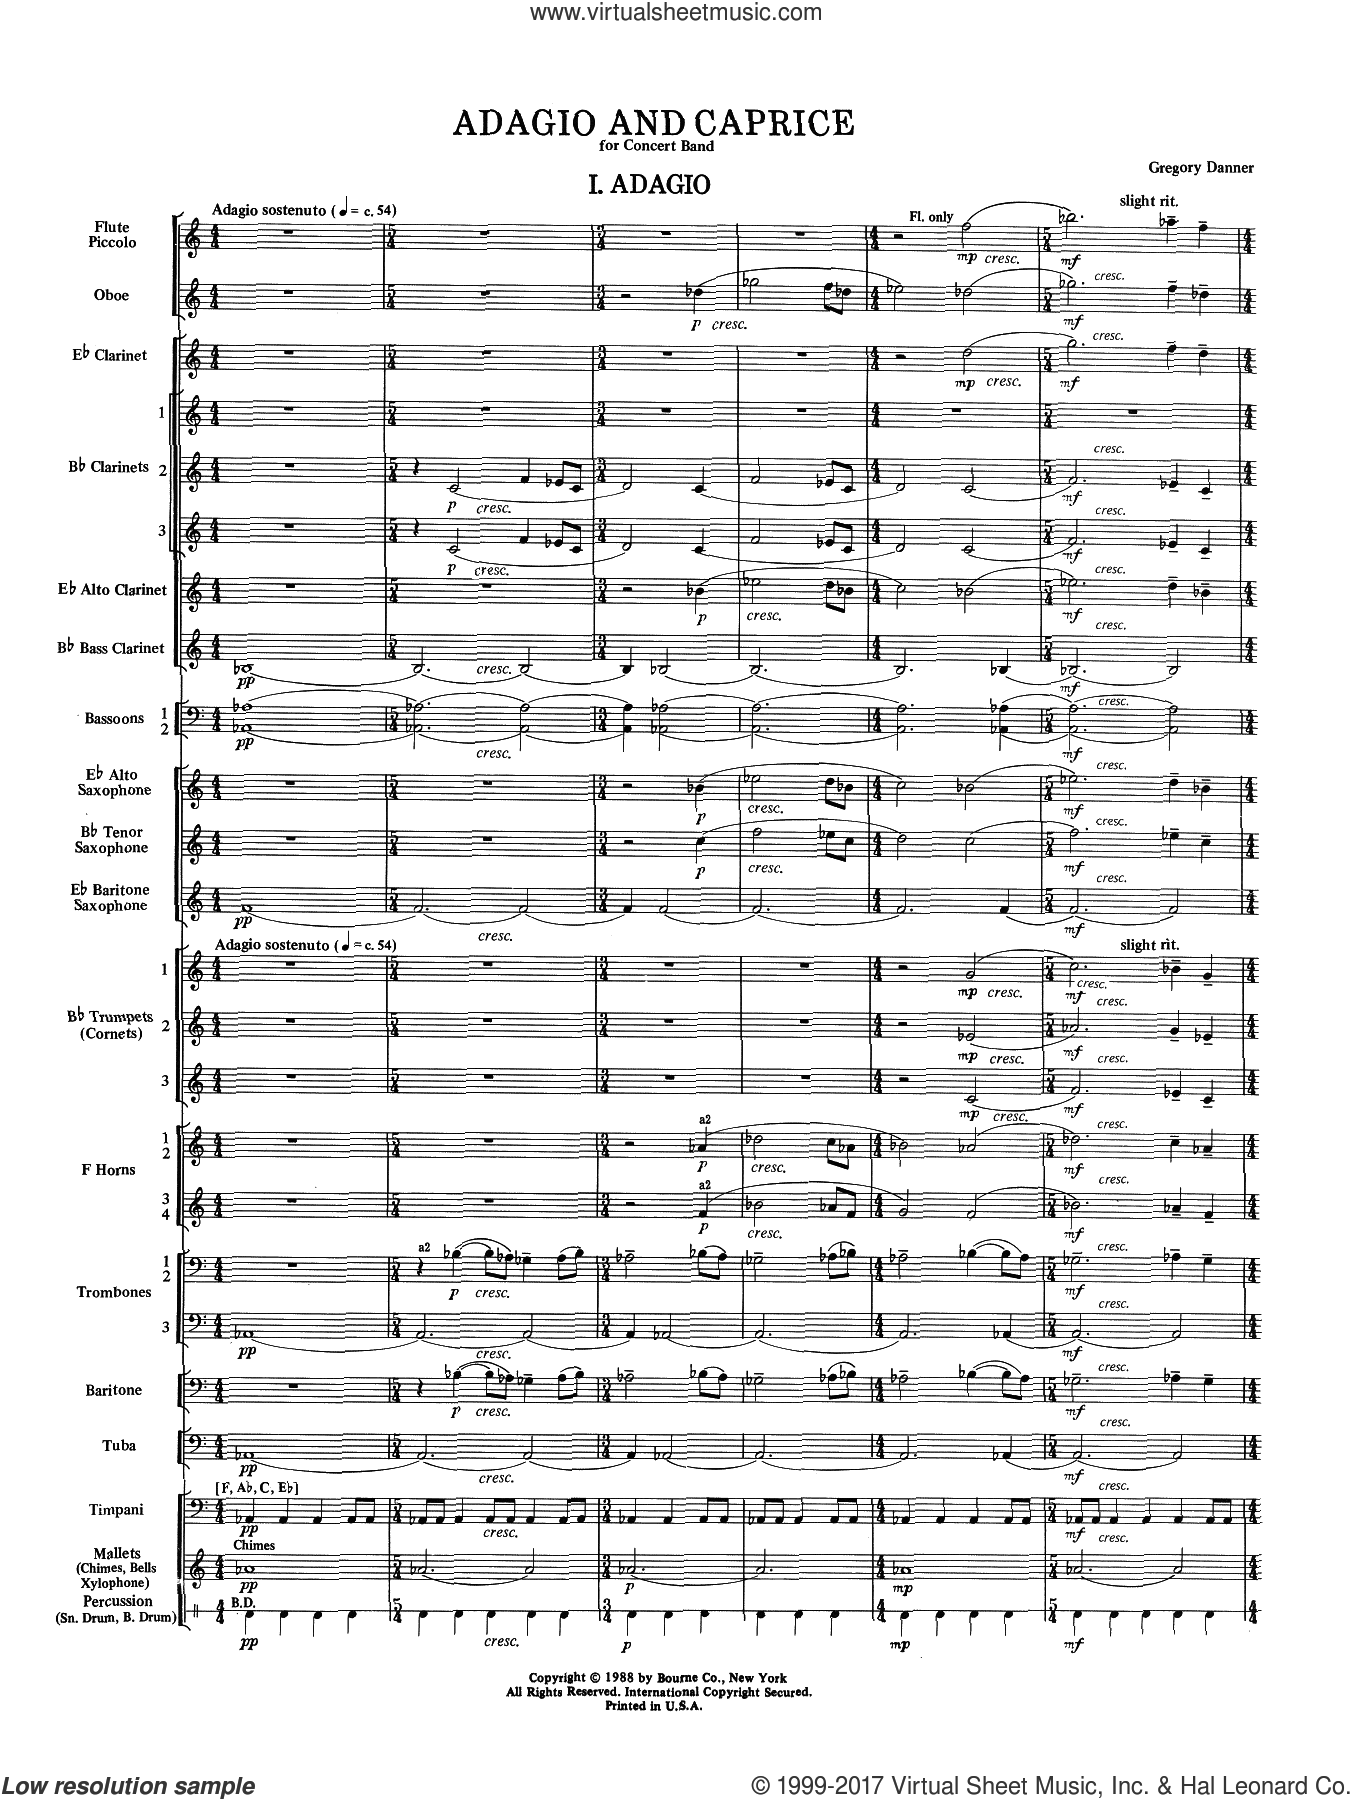 Adagio and Caprice (COMPLETE) sheet music for concert band by Gregory Danner, intermediate skill level